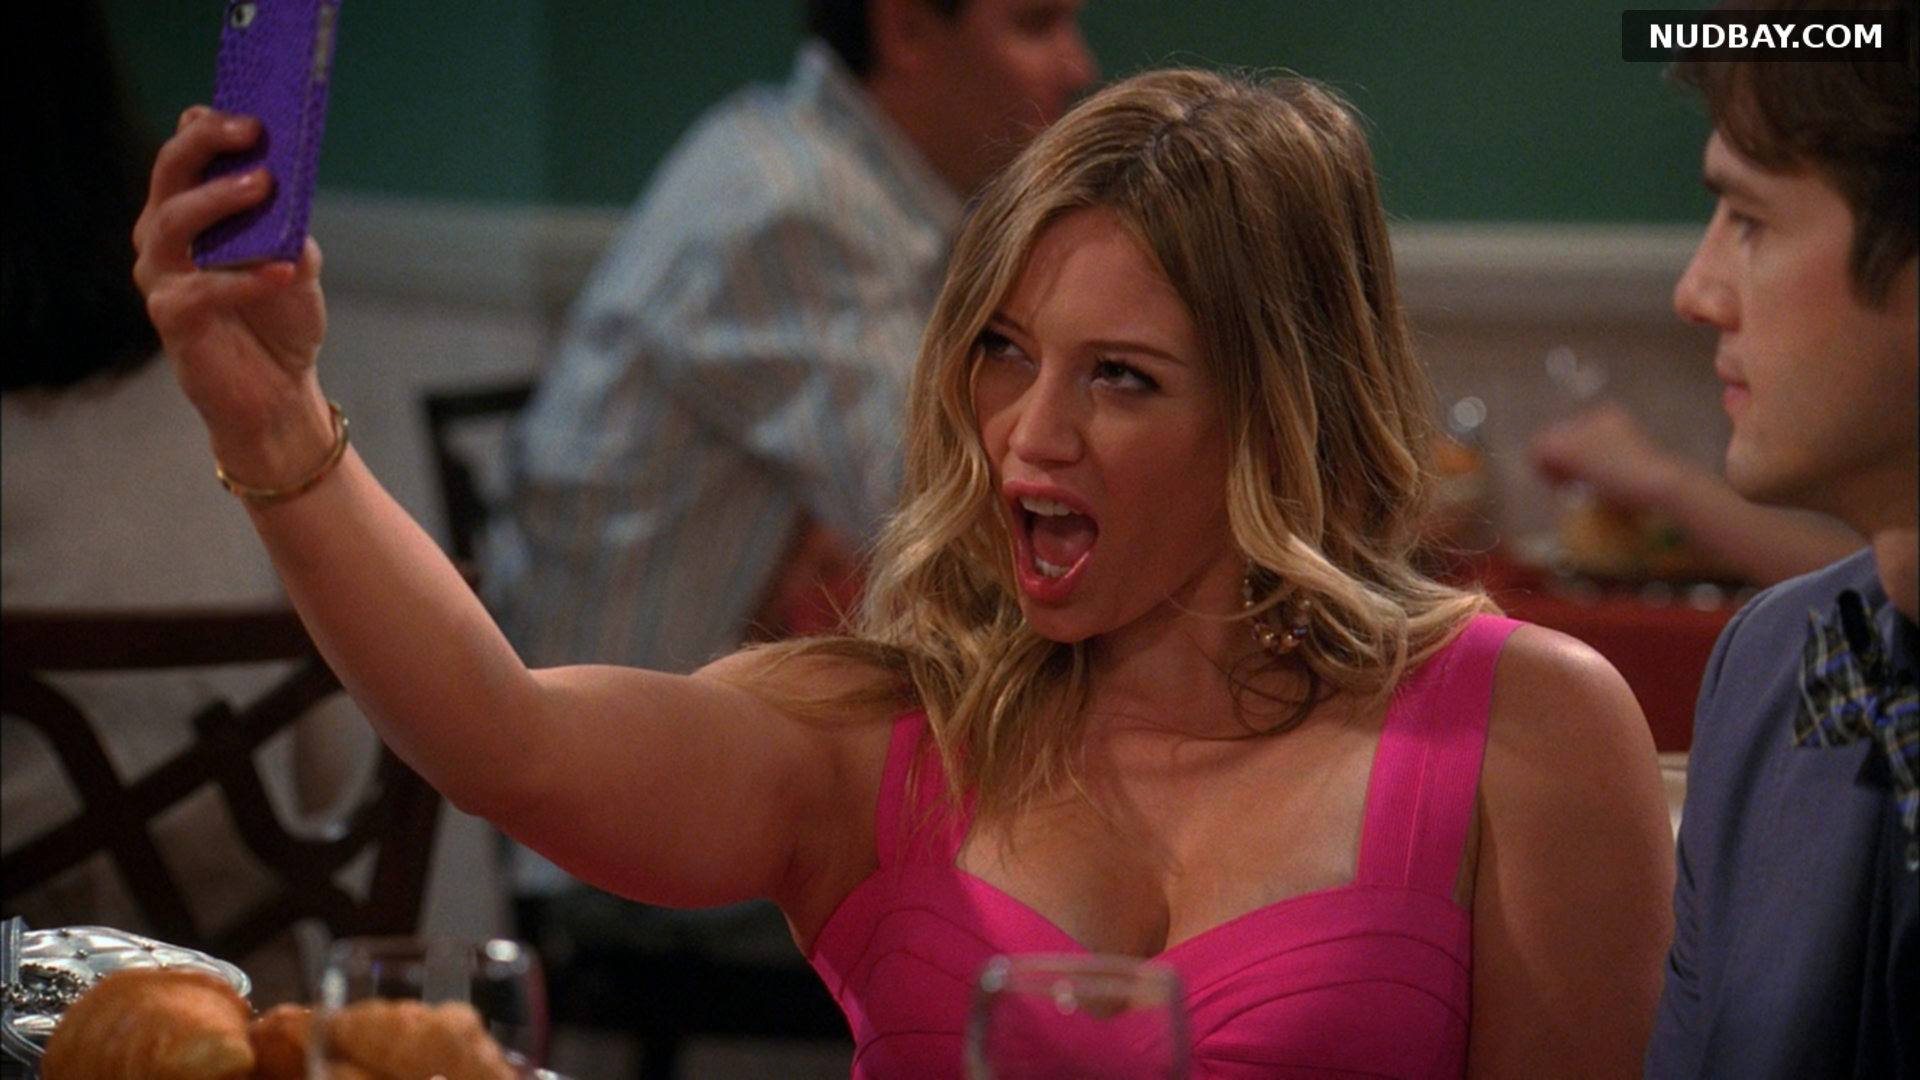 Hilary Duff Cleavage in Two & A Half Men S010 E23 (2013)